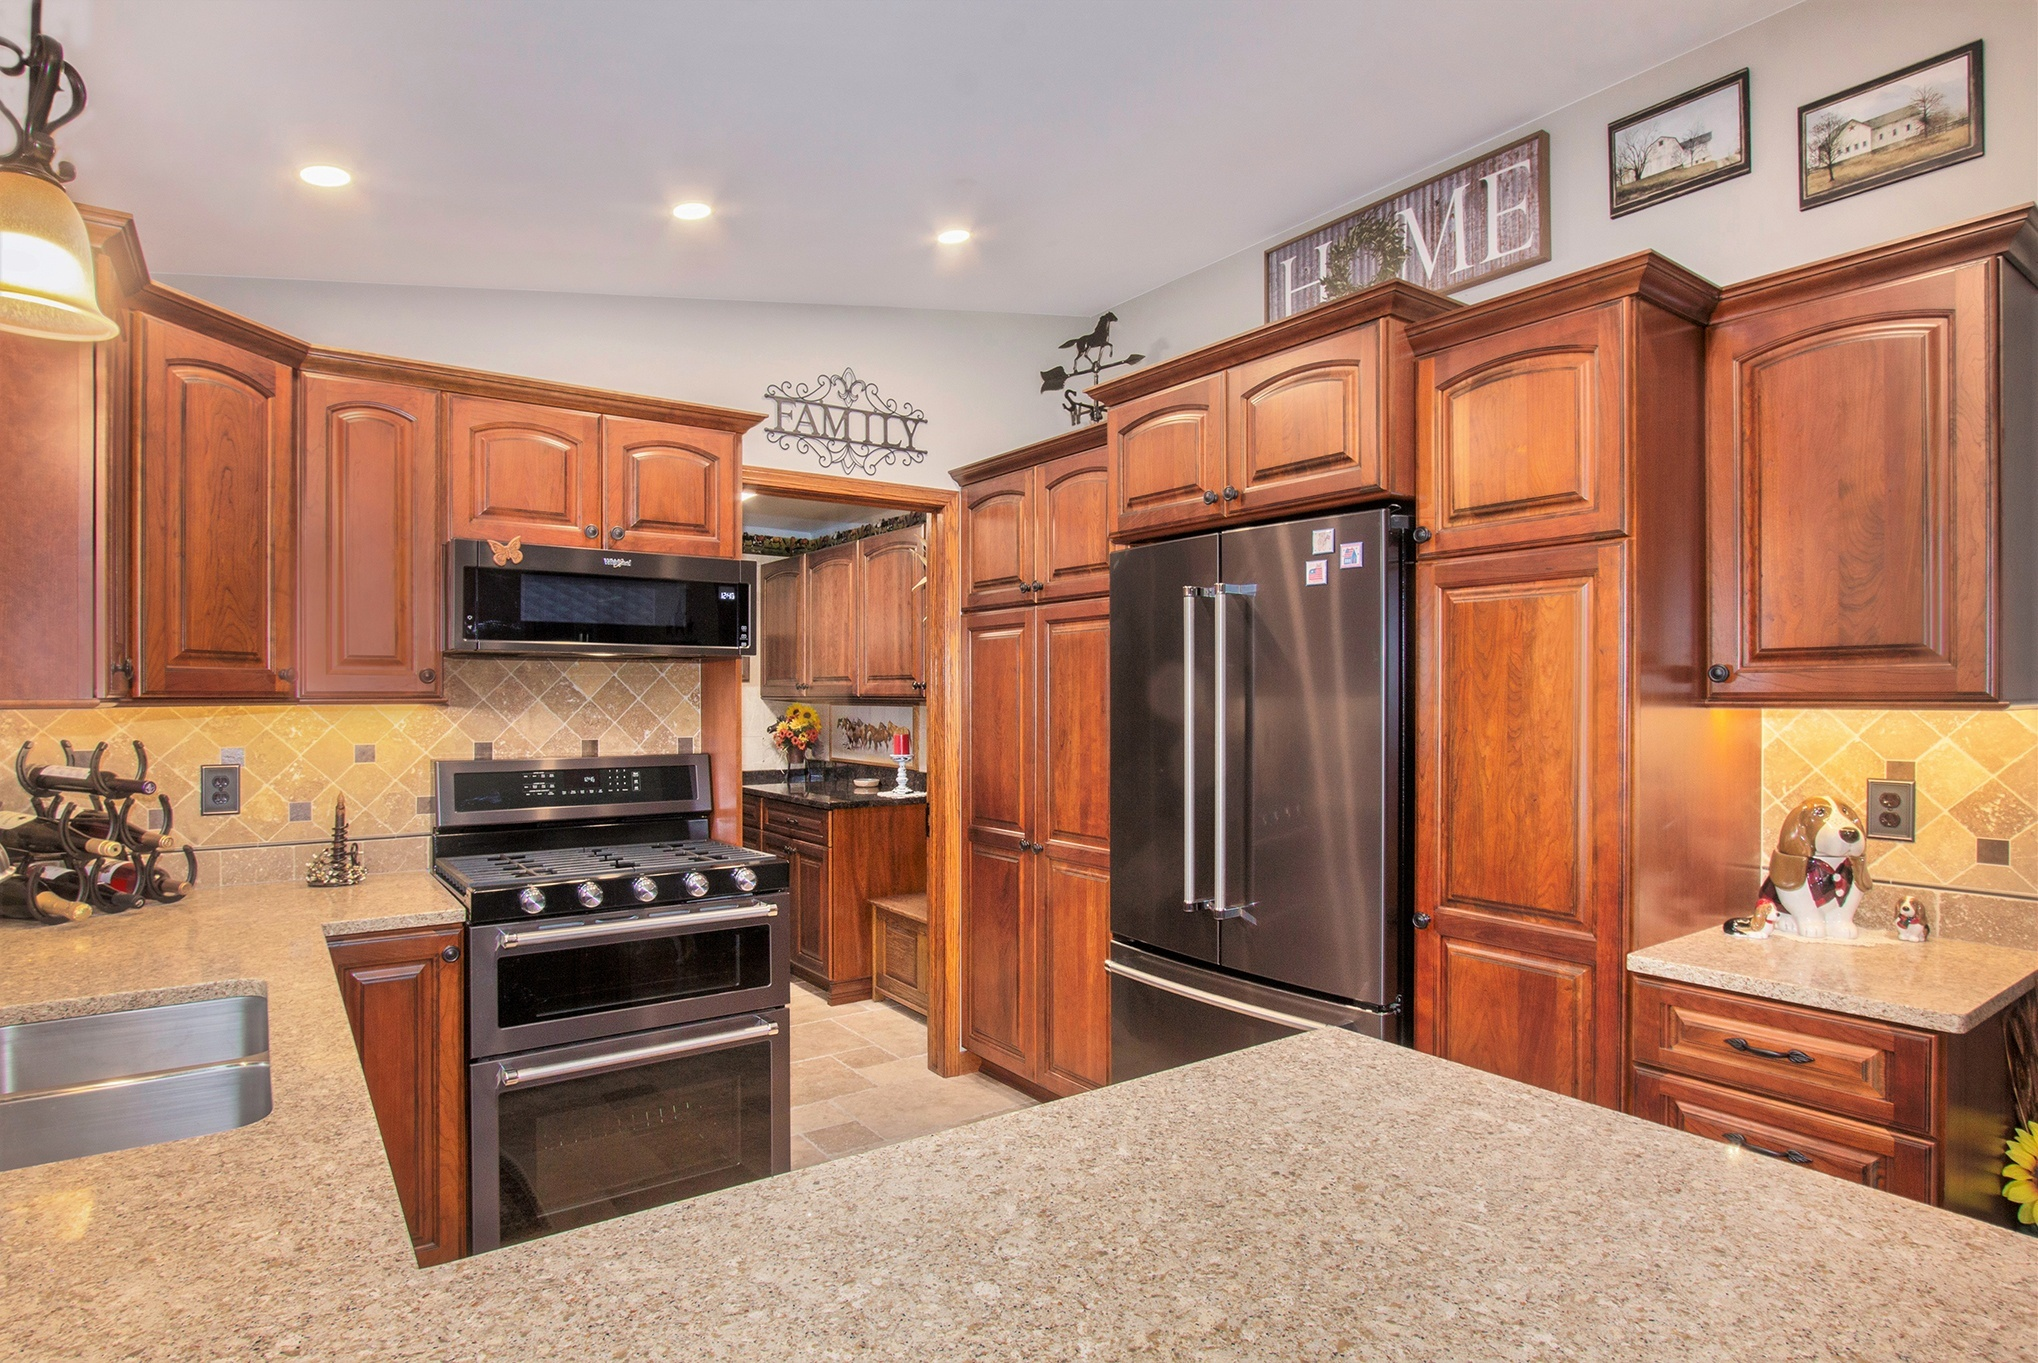 Lowell Kitchen Cabinets and Appliances